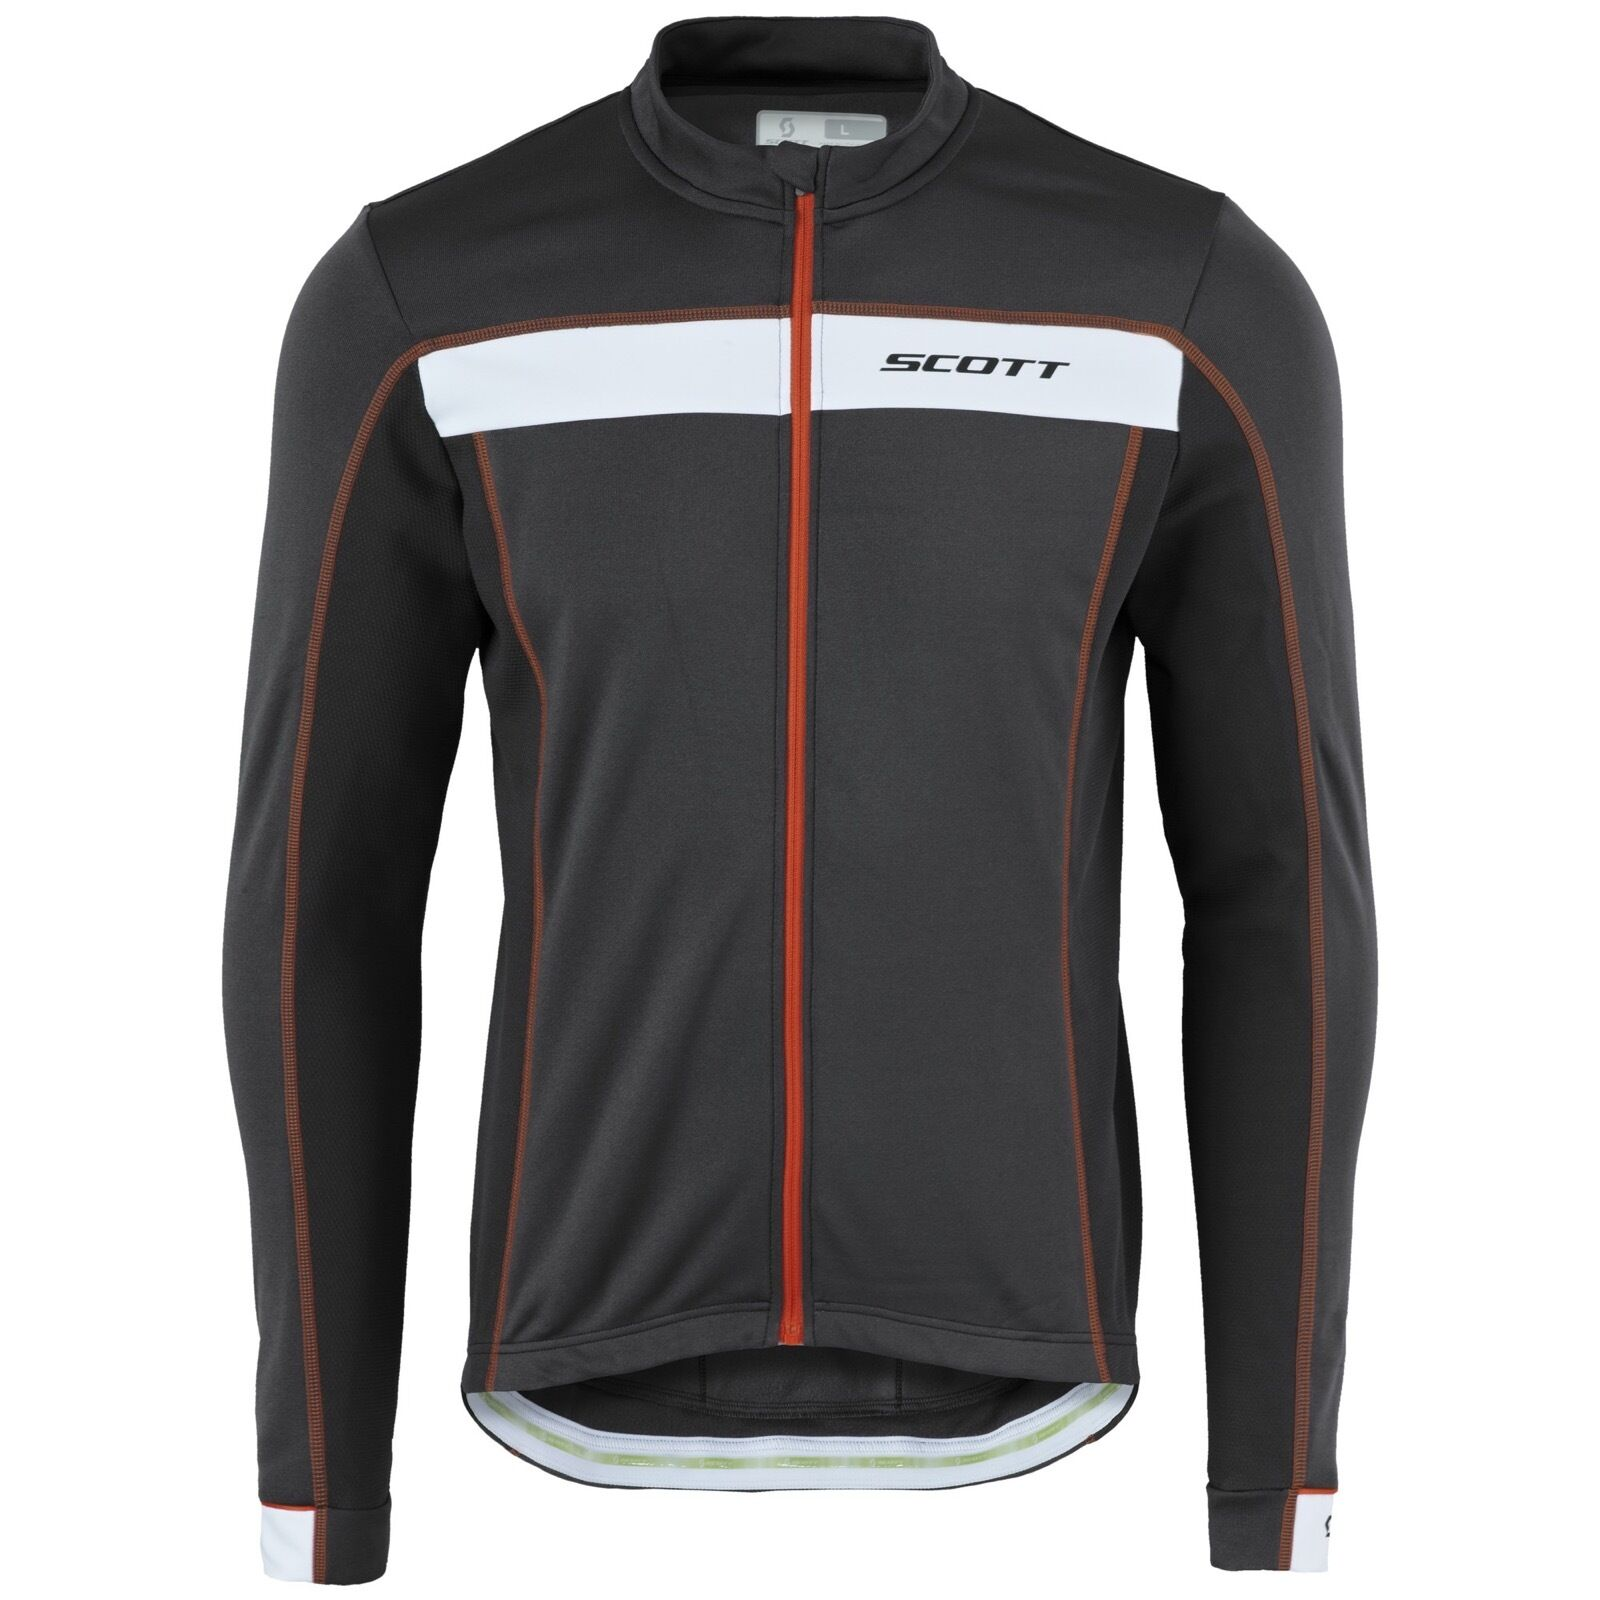 MAGLIA CICLISMO SCOTT SHIRT ENDURANCE AS 20 L SL color black-red-BIANCO